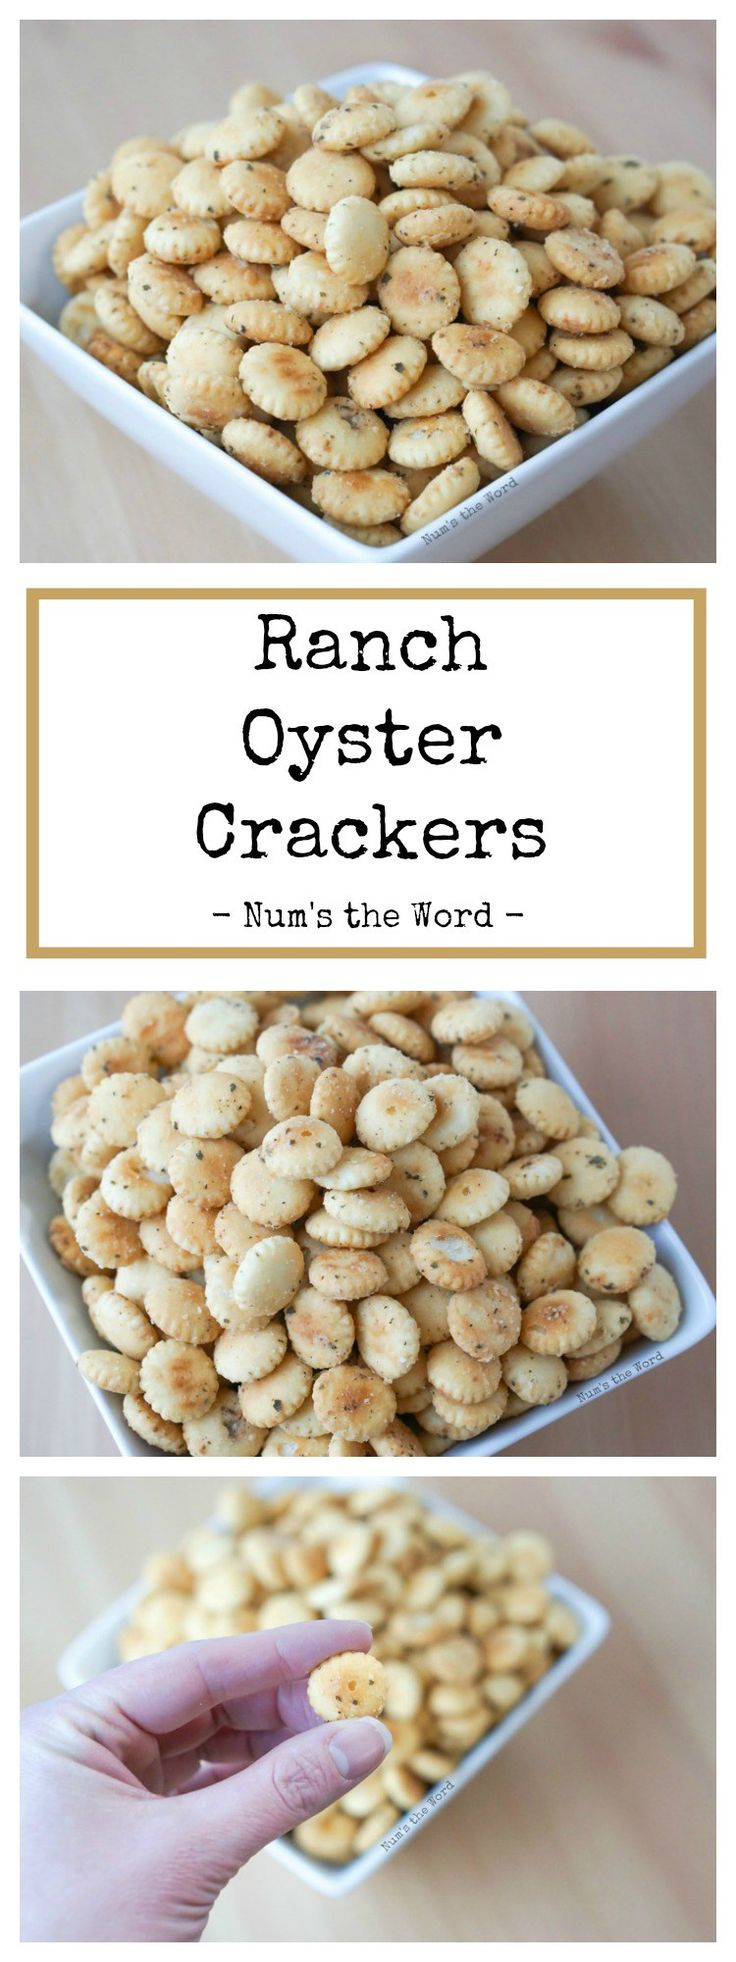 Ranch Oyster Crackers are the perfect snack or addition to your favorite tomato soup! With only 3 ingredients, these little crackers will quickly become your new favorite snack!